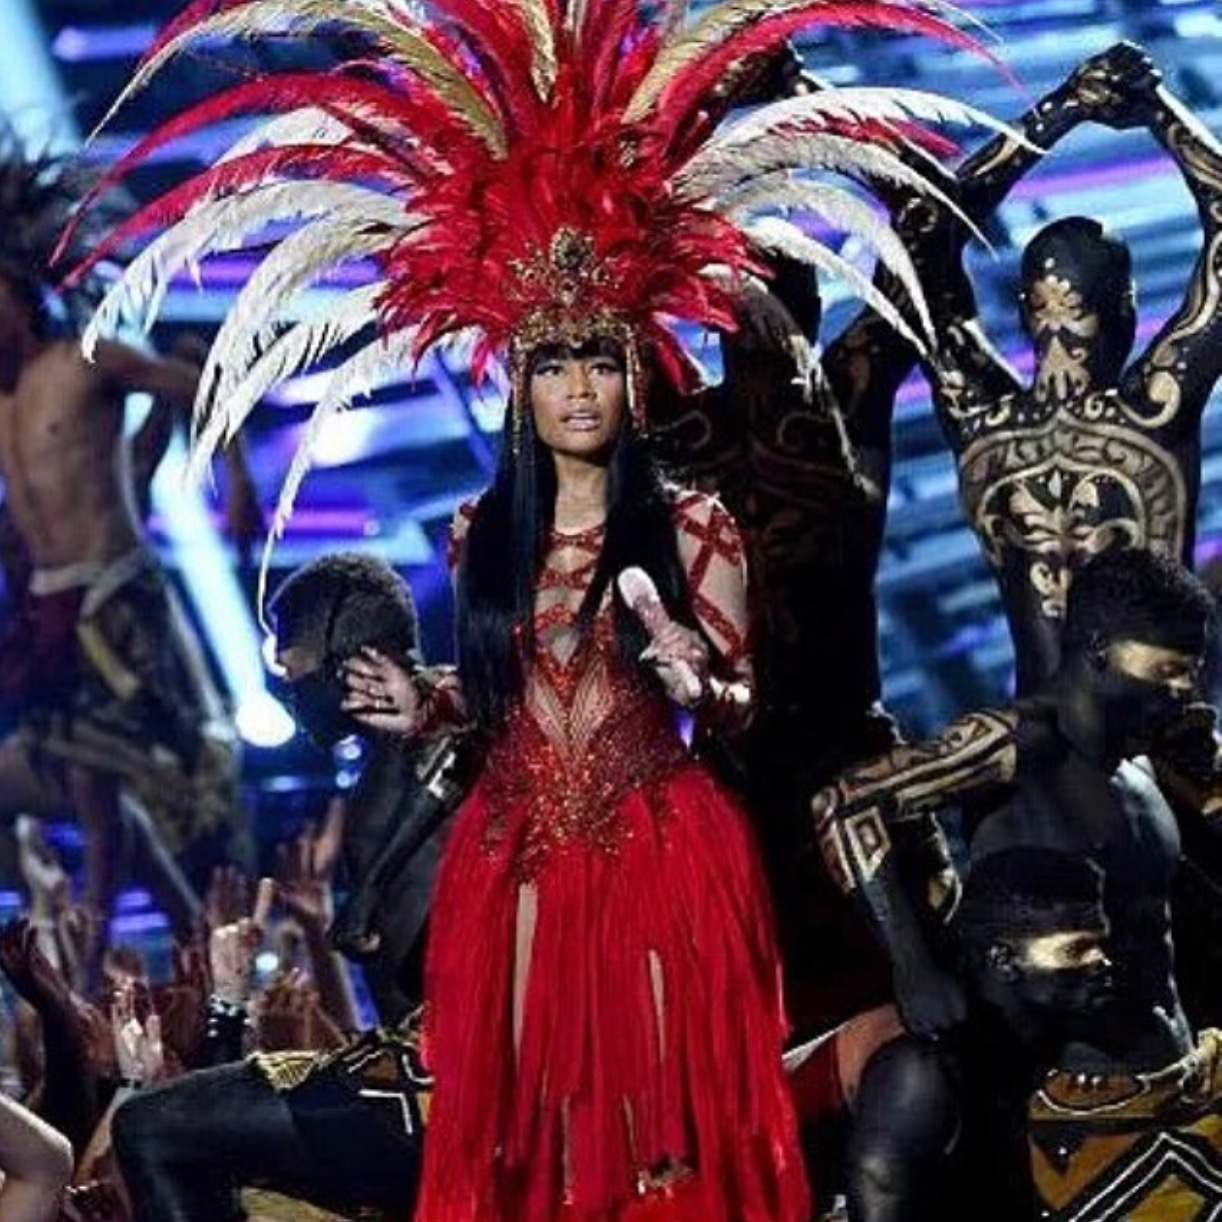 Nicki Minaj 2015 VMA performance